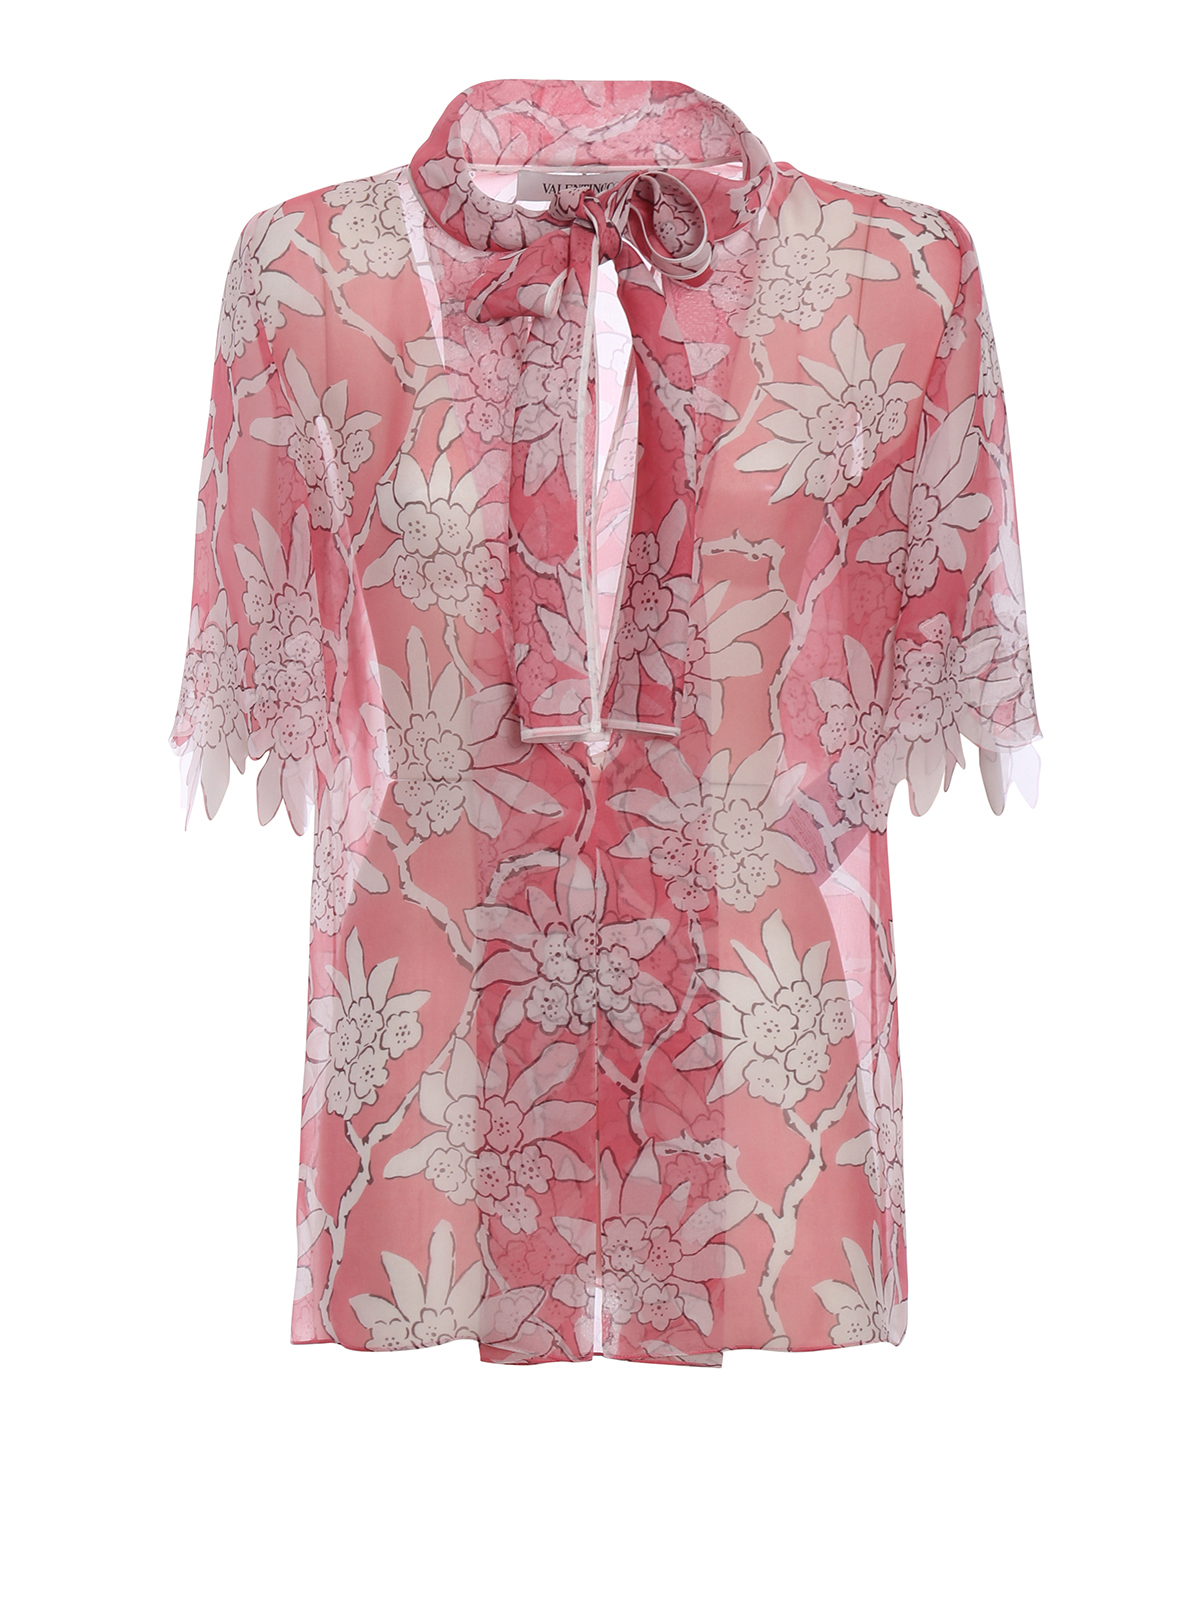 c49f2f9af246 Valentino - Rhododendron print silk blouse - blouses - PB3AA0203Q0 I78